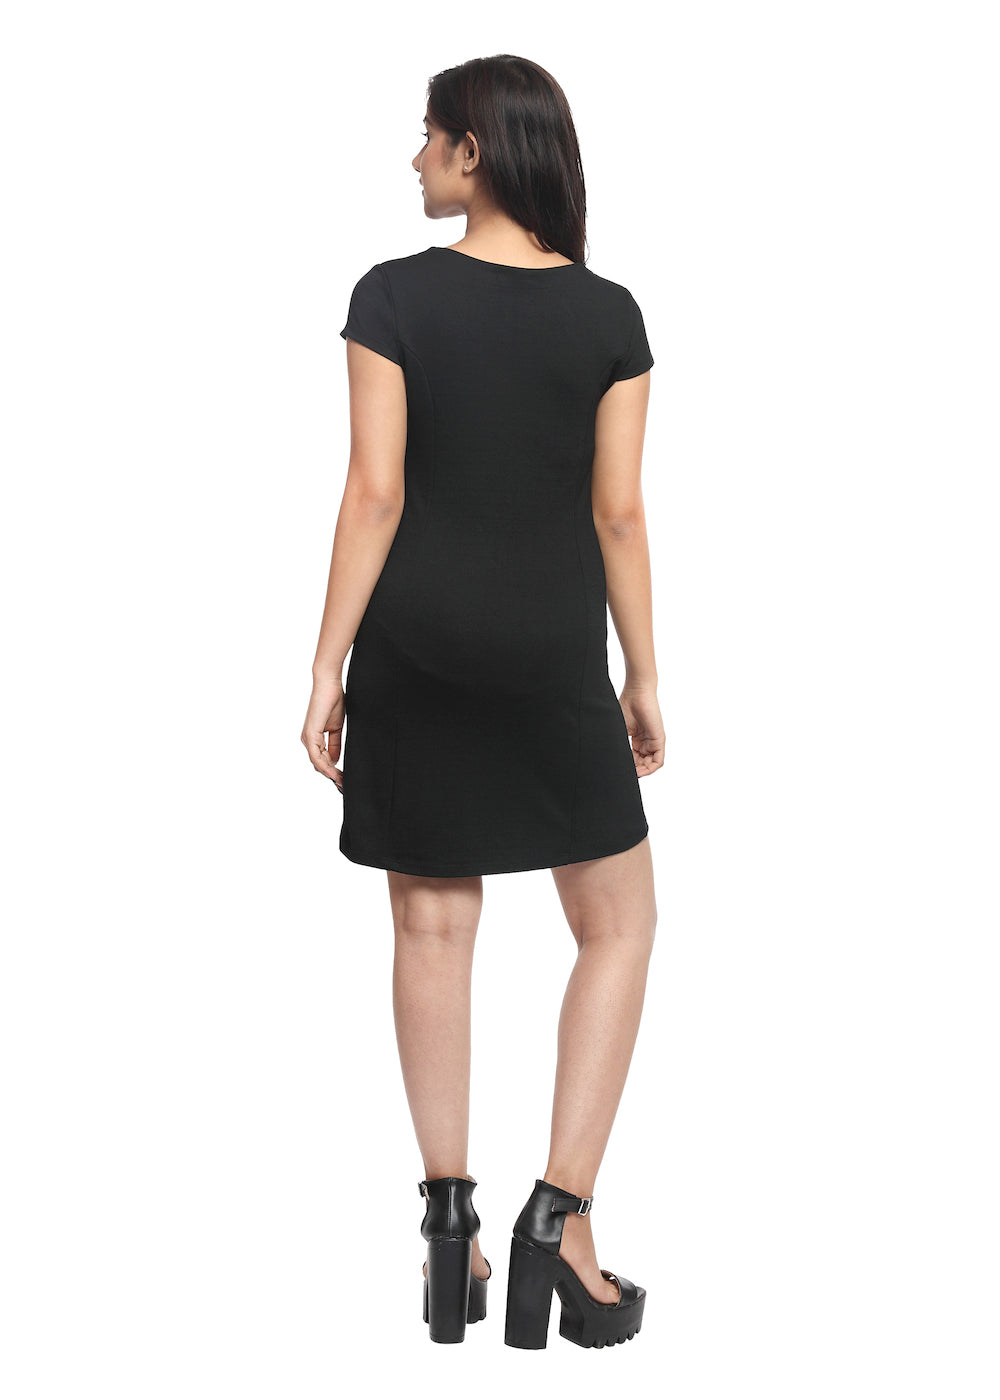 Black Knit Dress - GENZEE